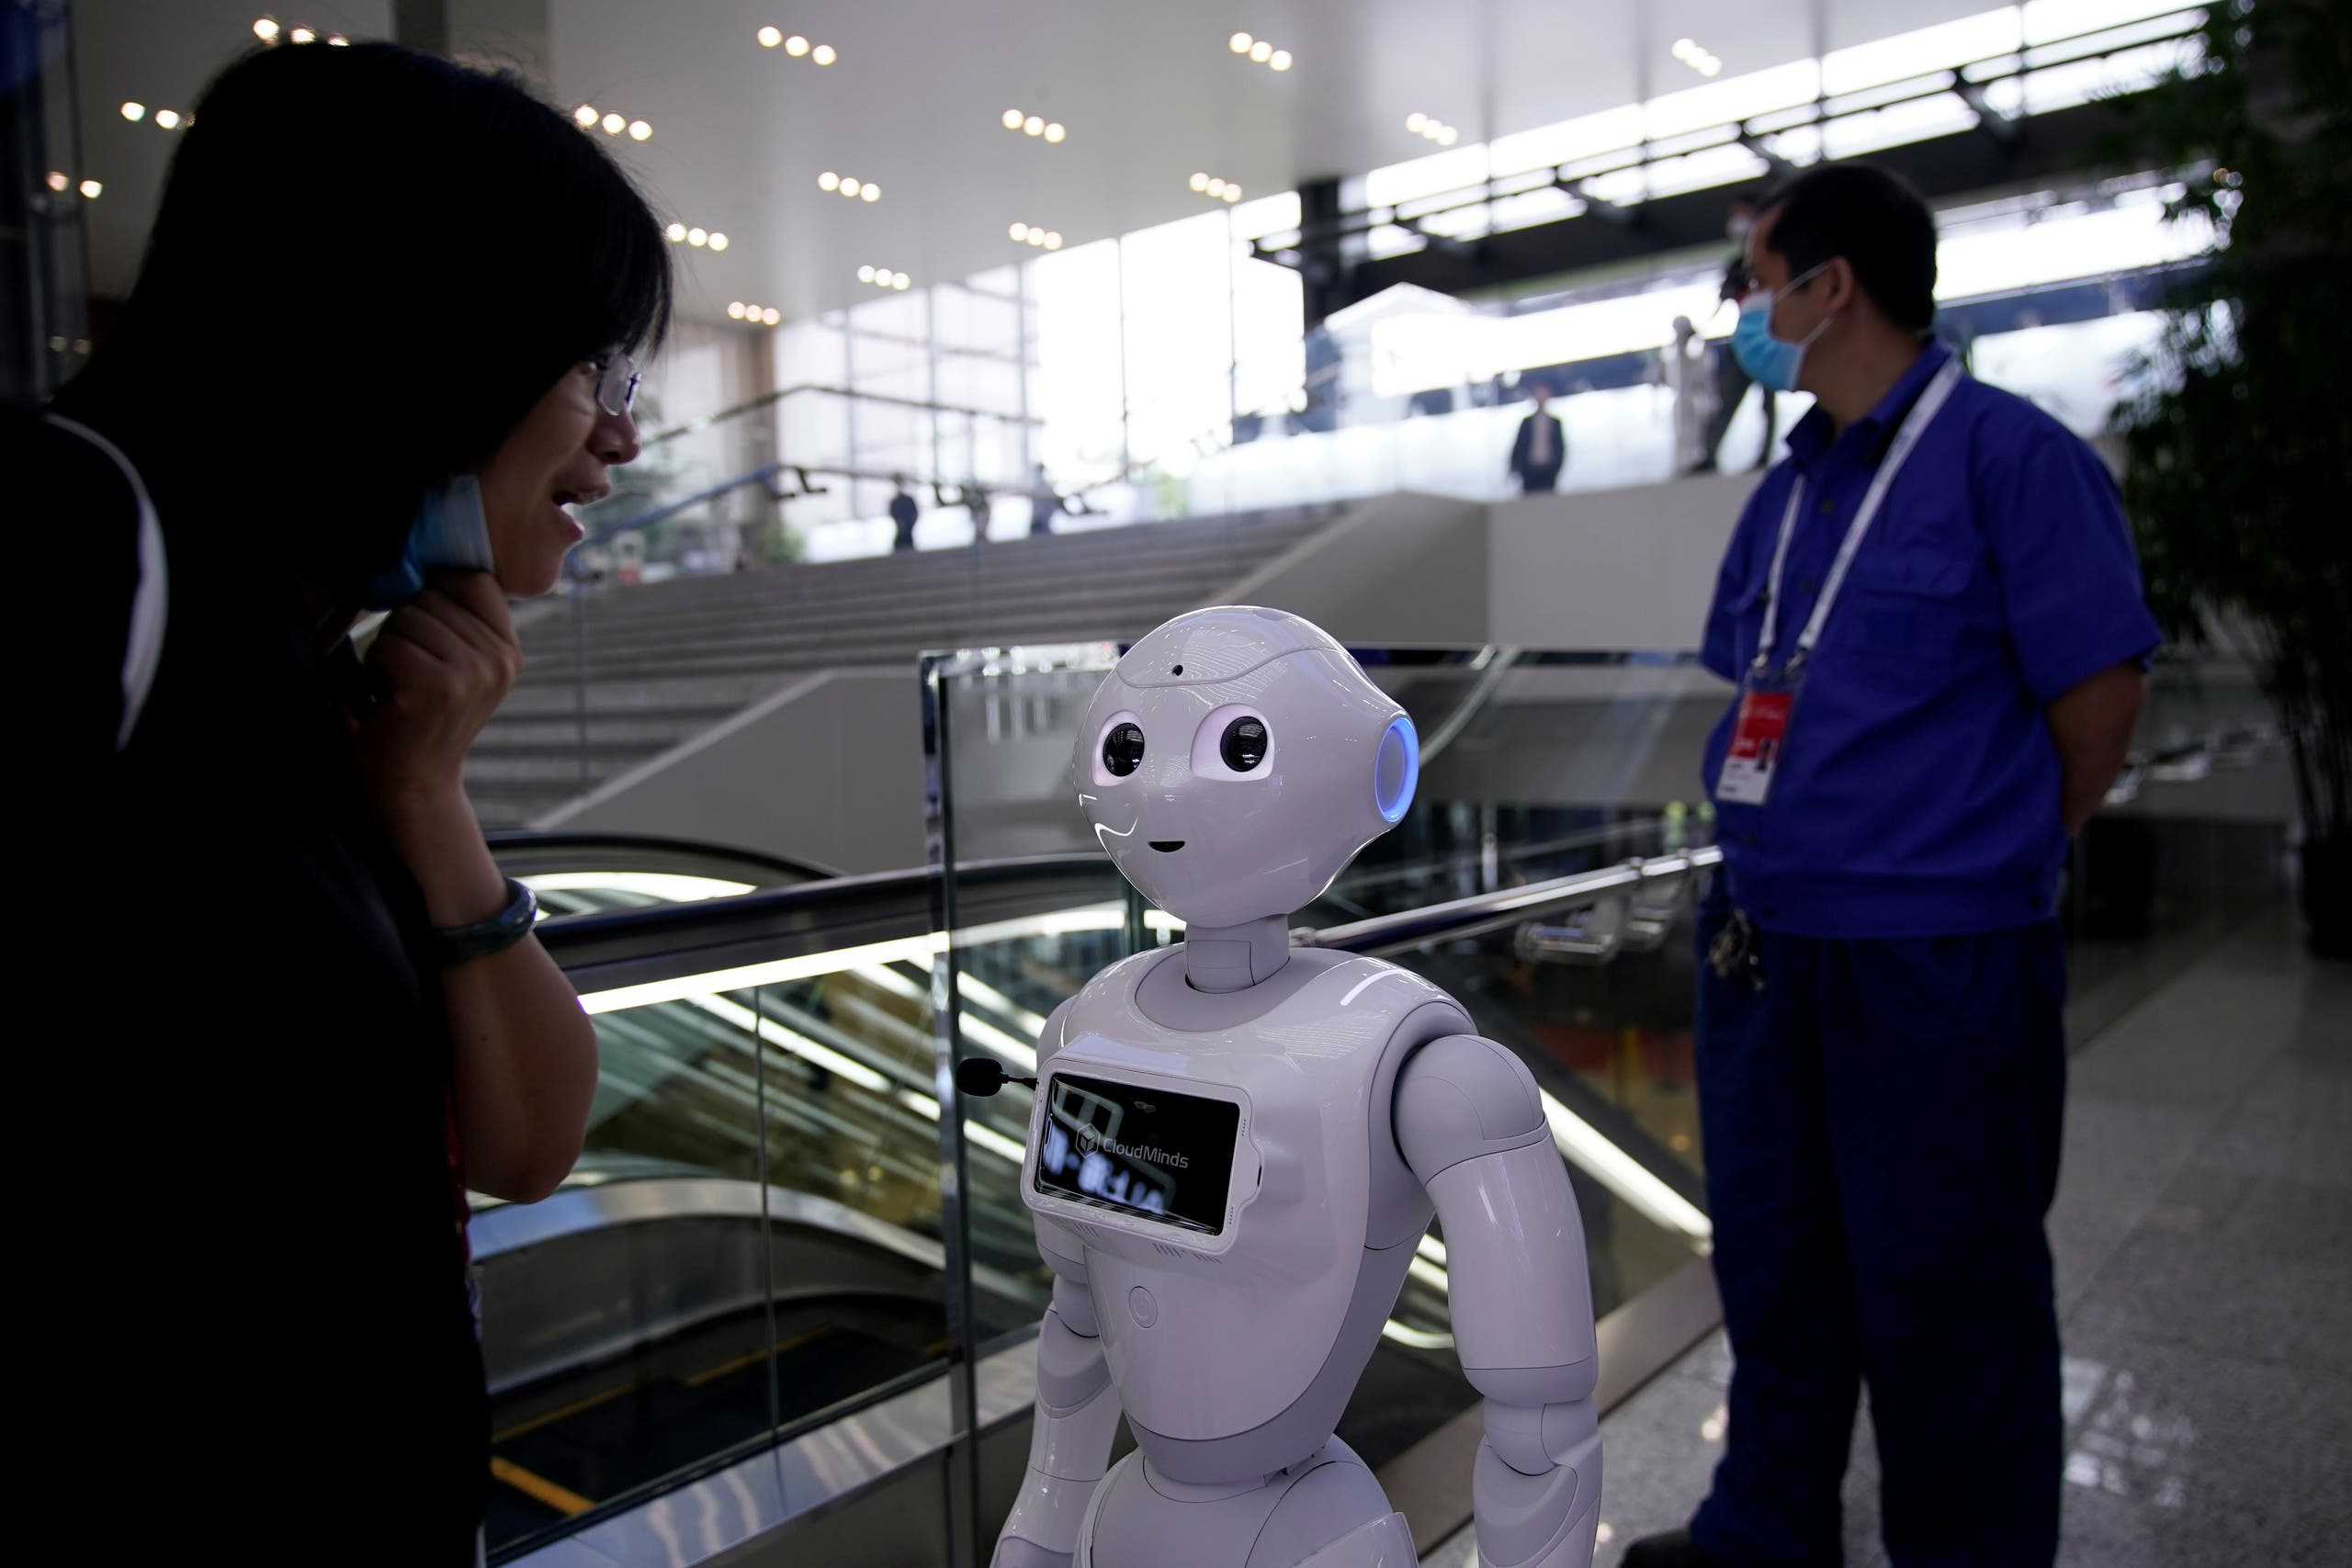 People wearing face masks following the coronavirus disease (COVID-19) outbreak are seen near a robot at the venue for the World Artificial Intelligence Conference (WAIC) in Shanghai, China July 9, 2020. (Reuters)